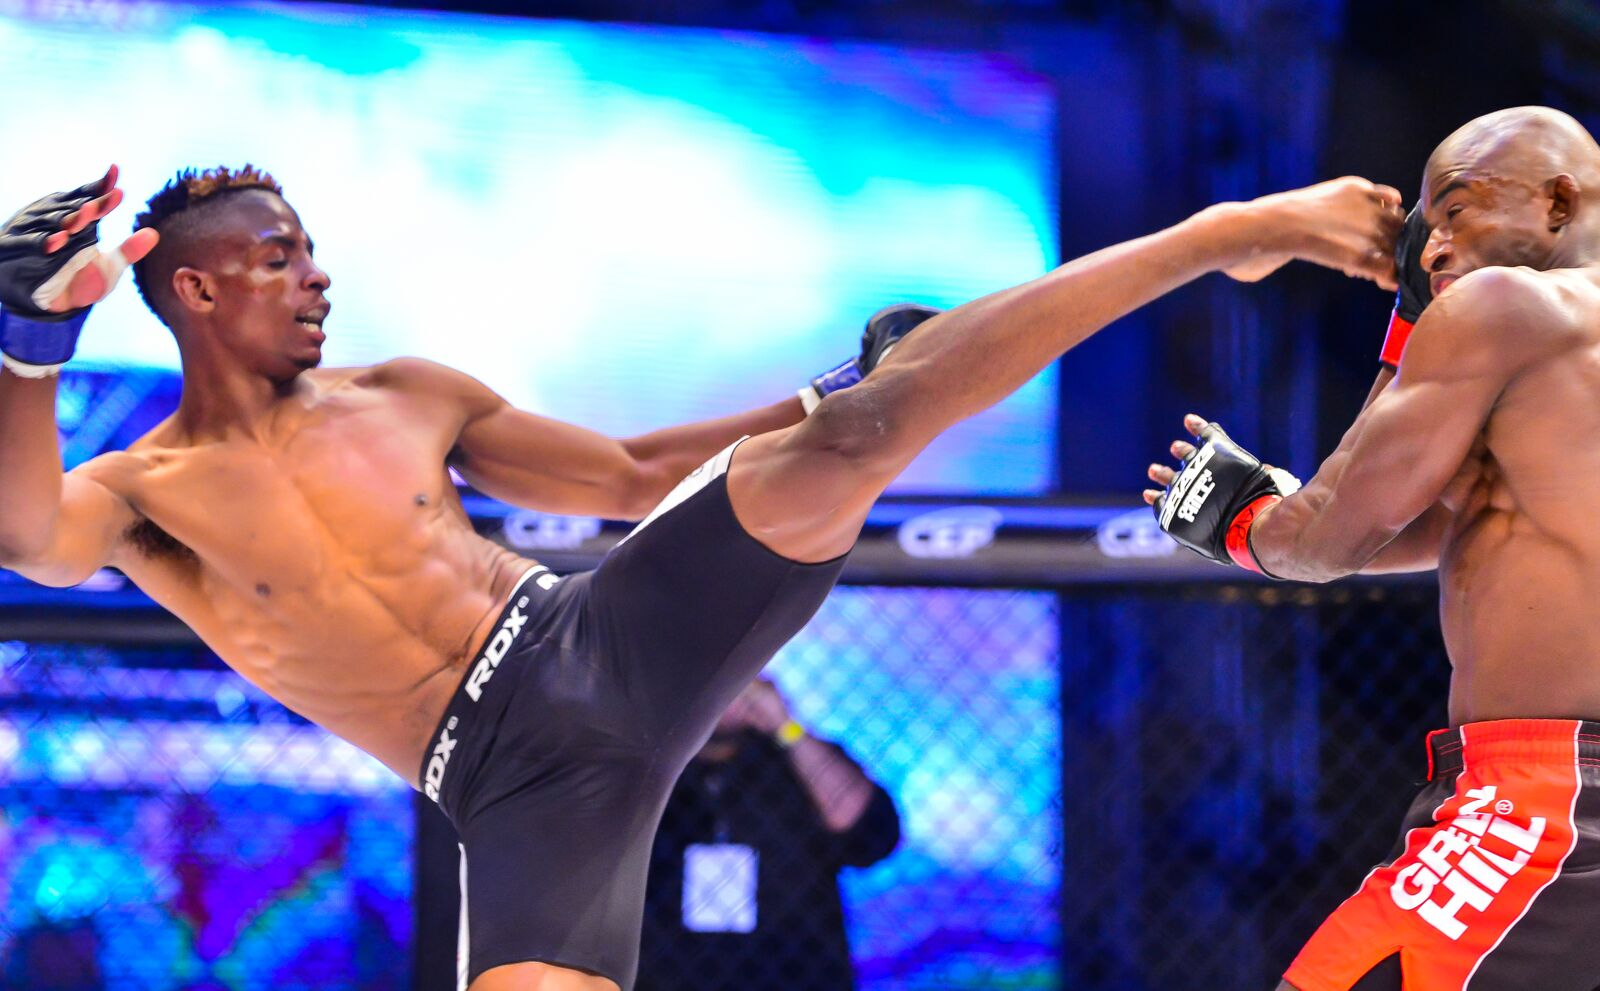 BRAVE CF 31: Ndebele out to prove he's still the future of MMA in South Africa - BRAVE CF 31